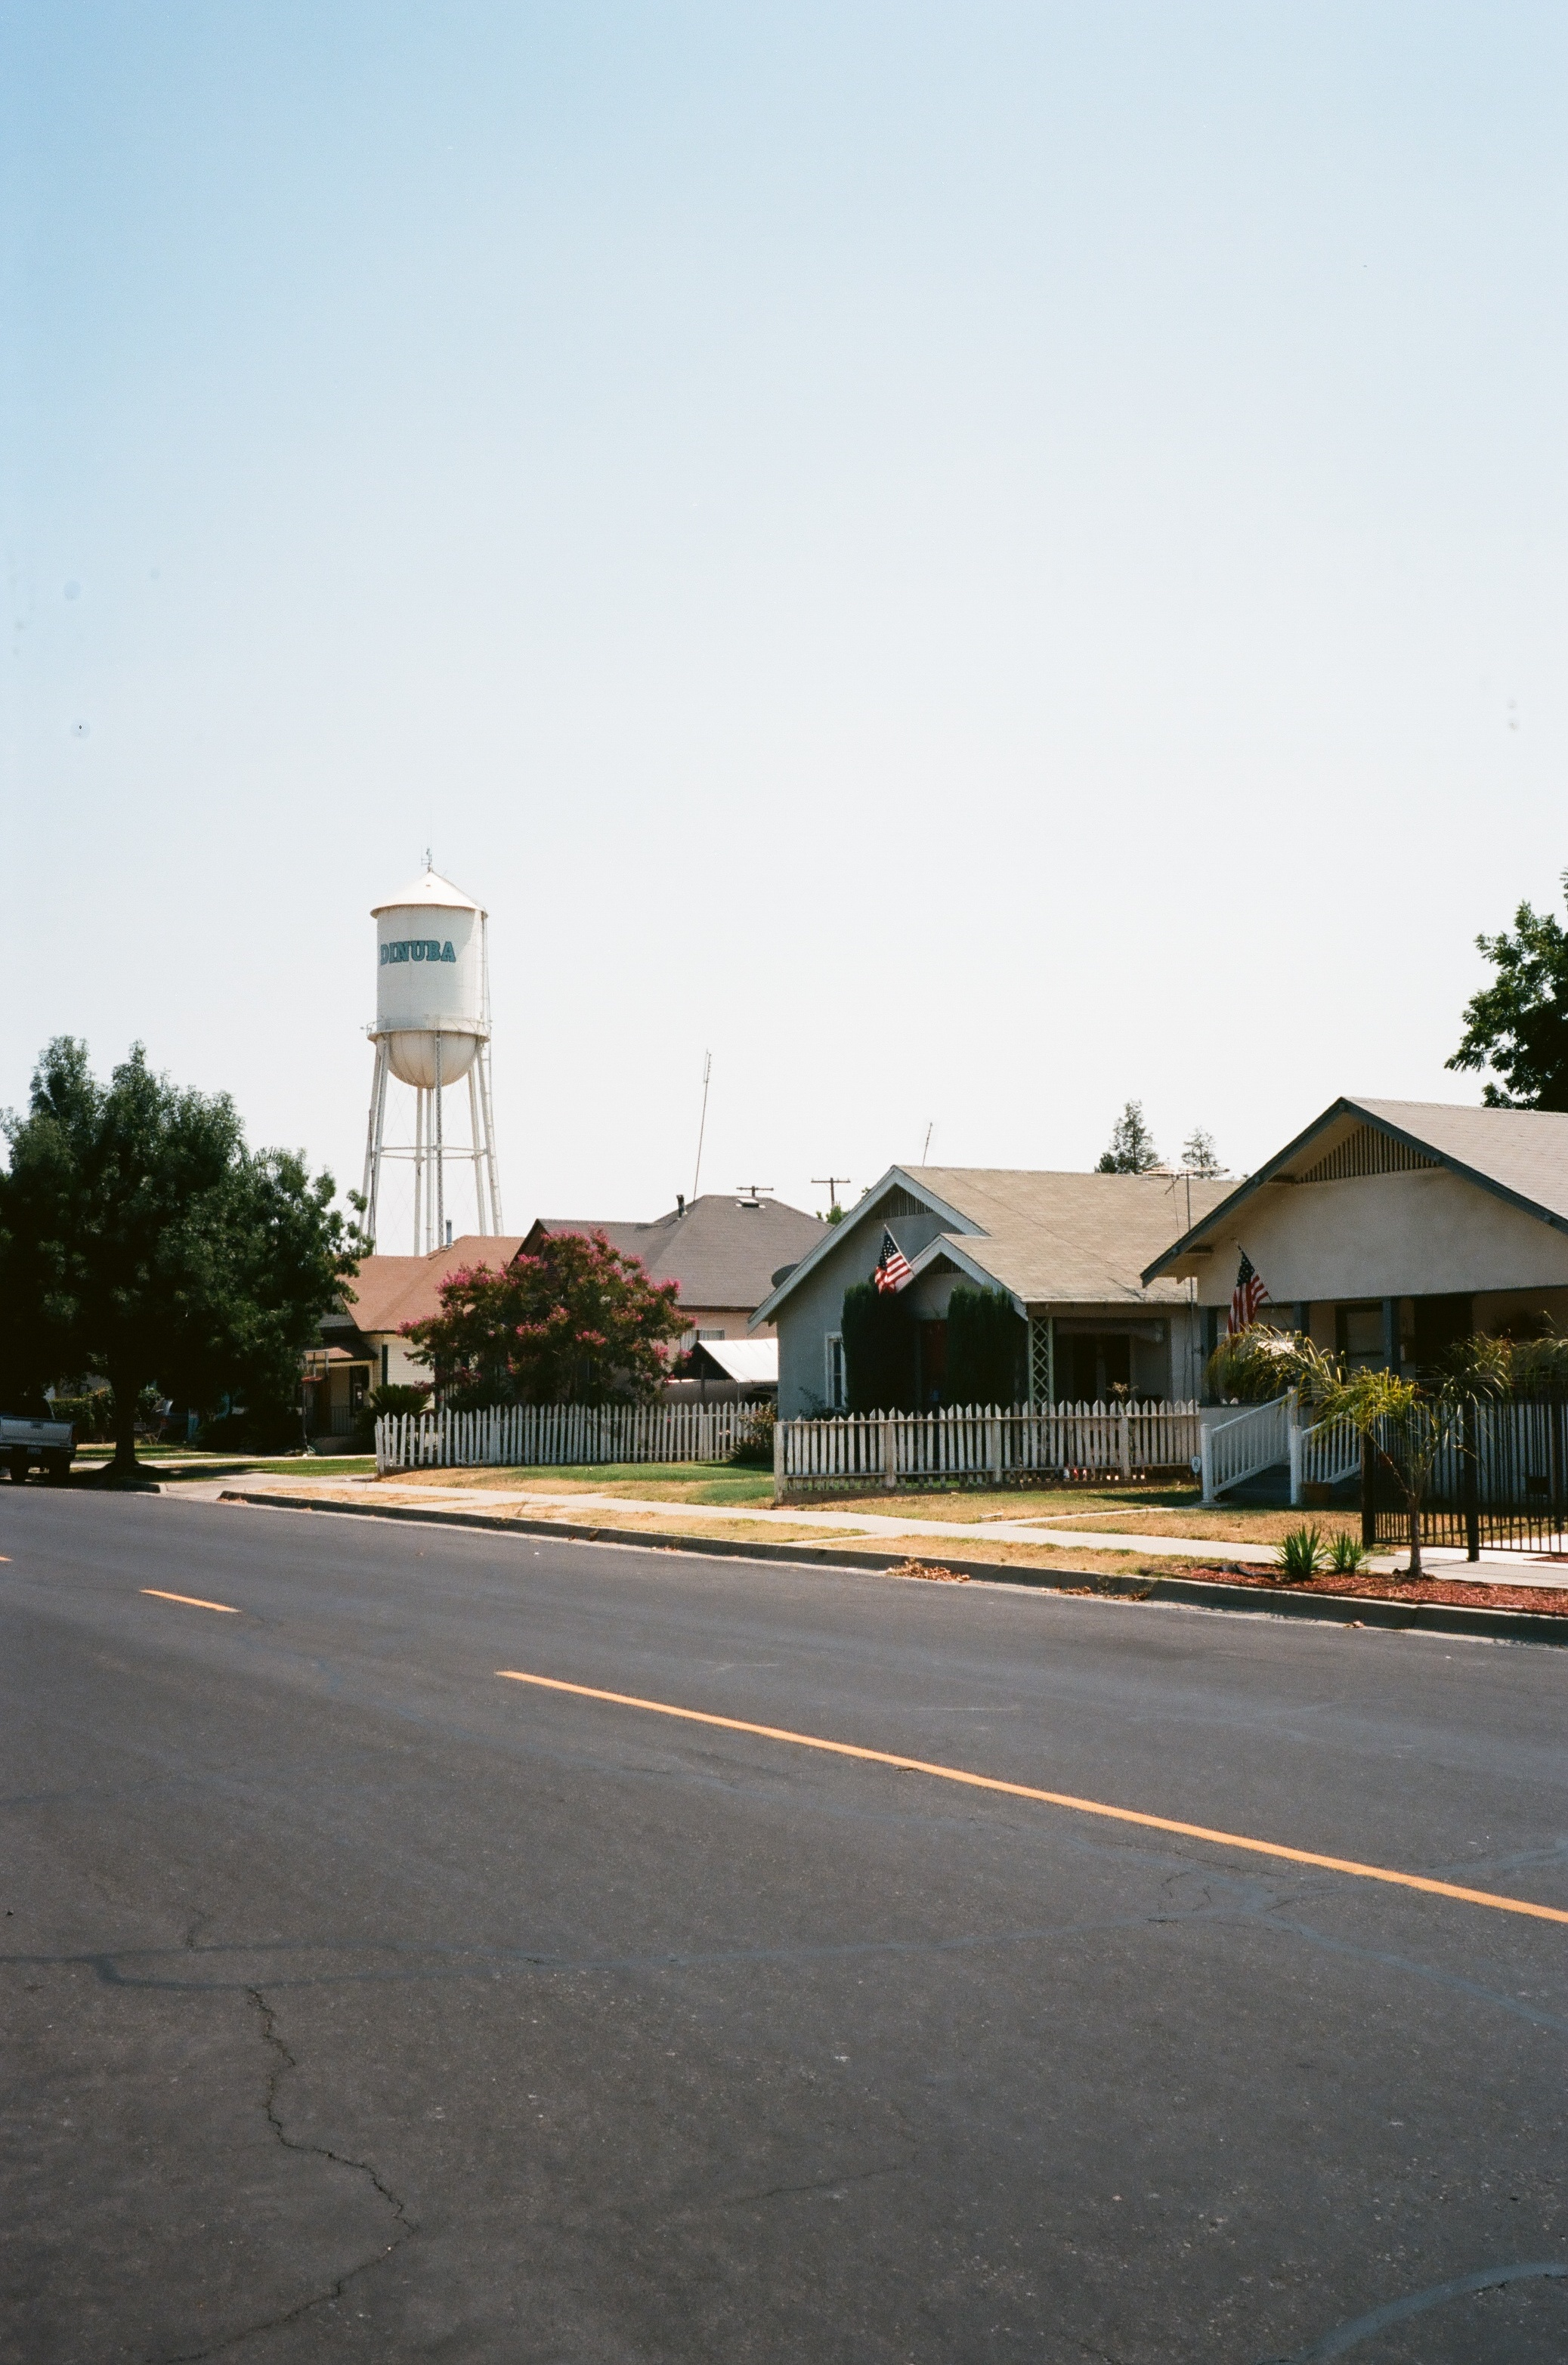 Dinuba, California